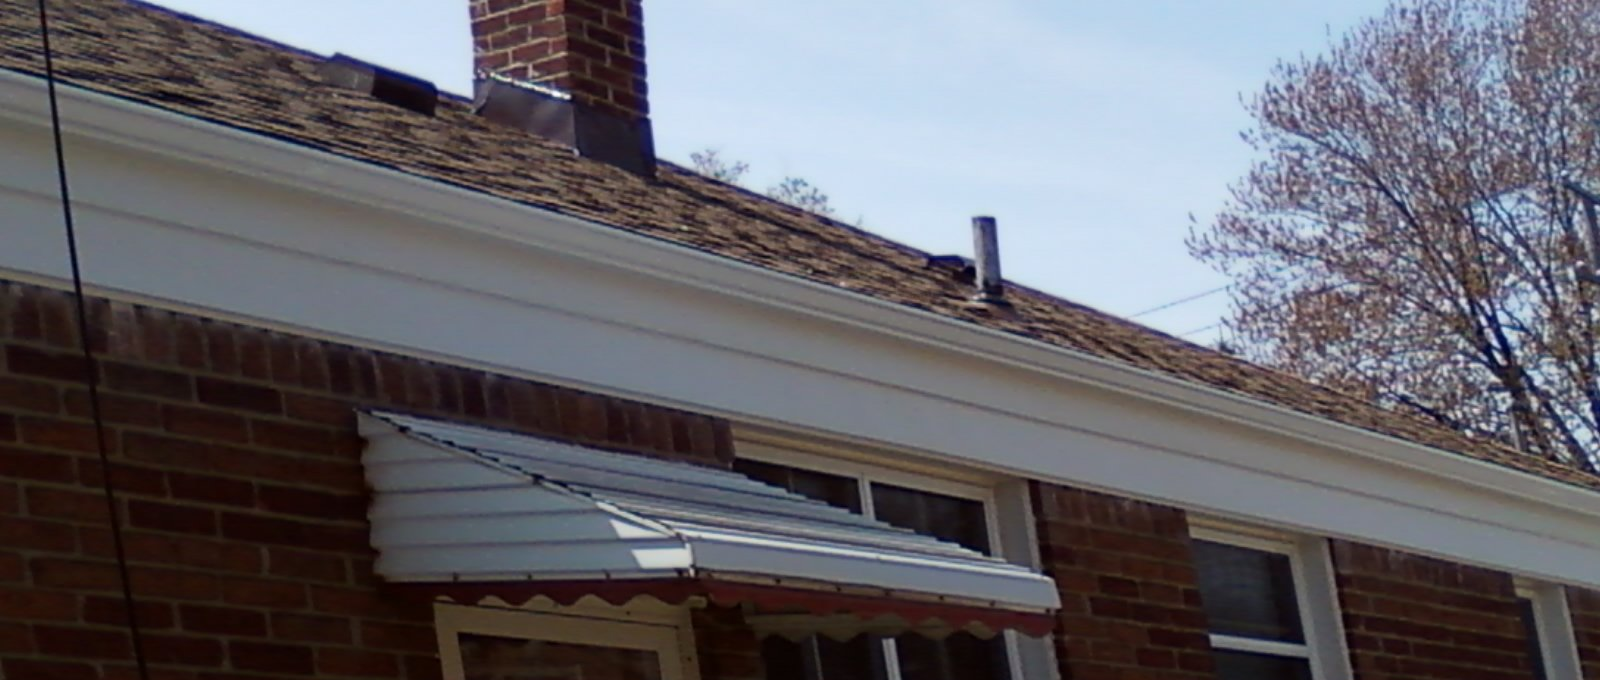 Gutters Siding Roofing Lincoln Park Mi 48146